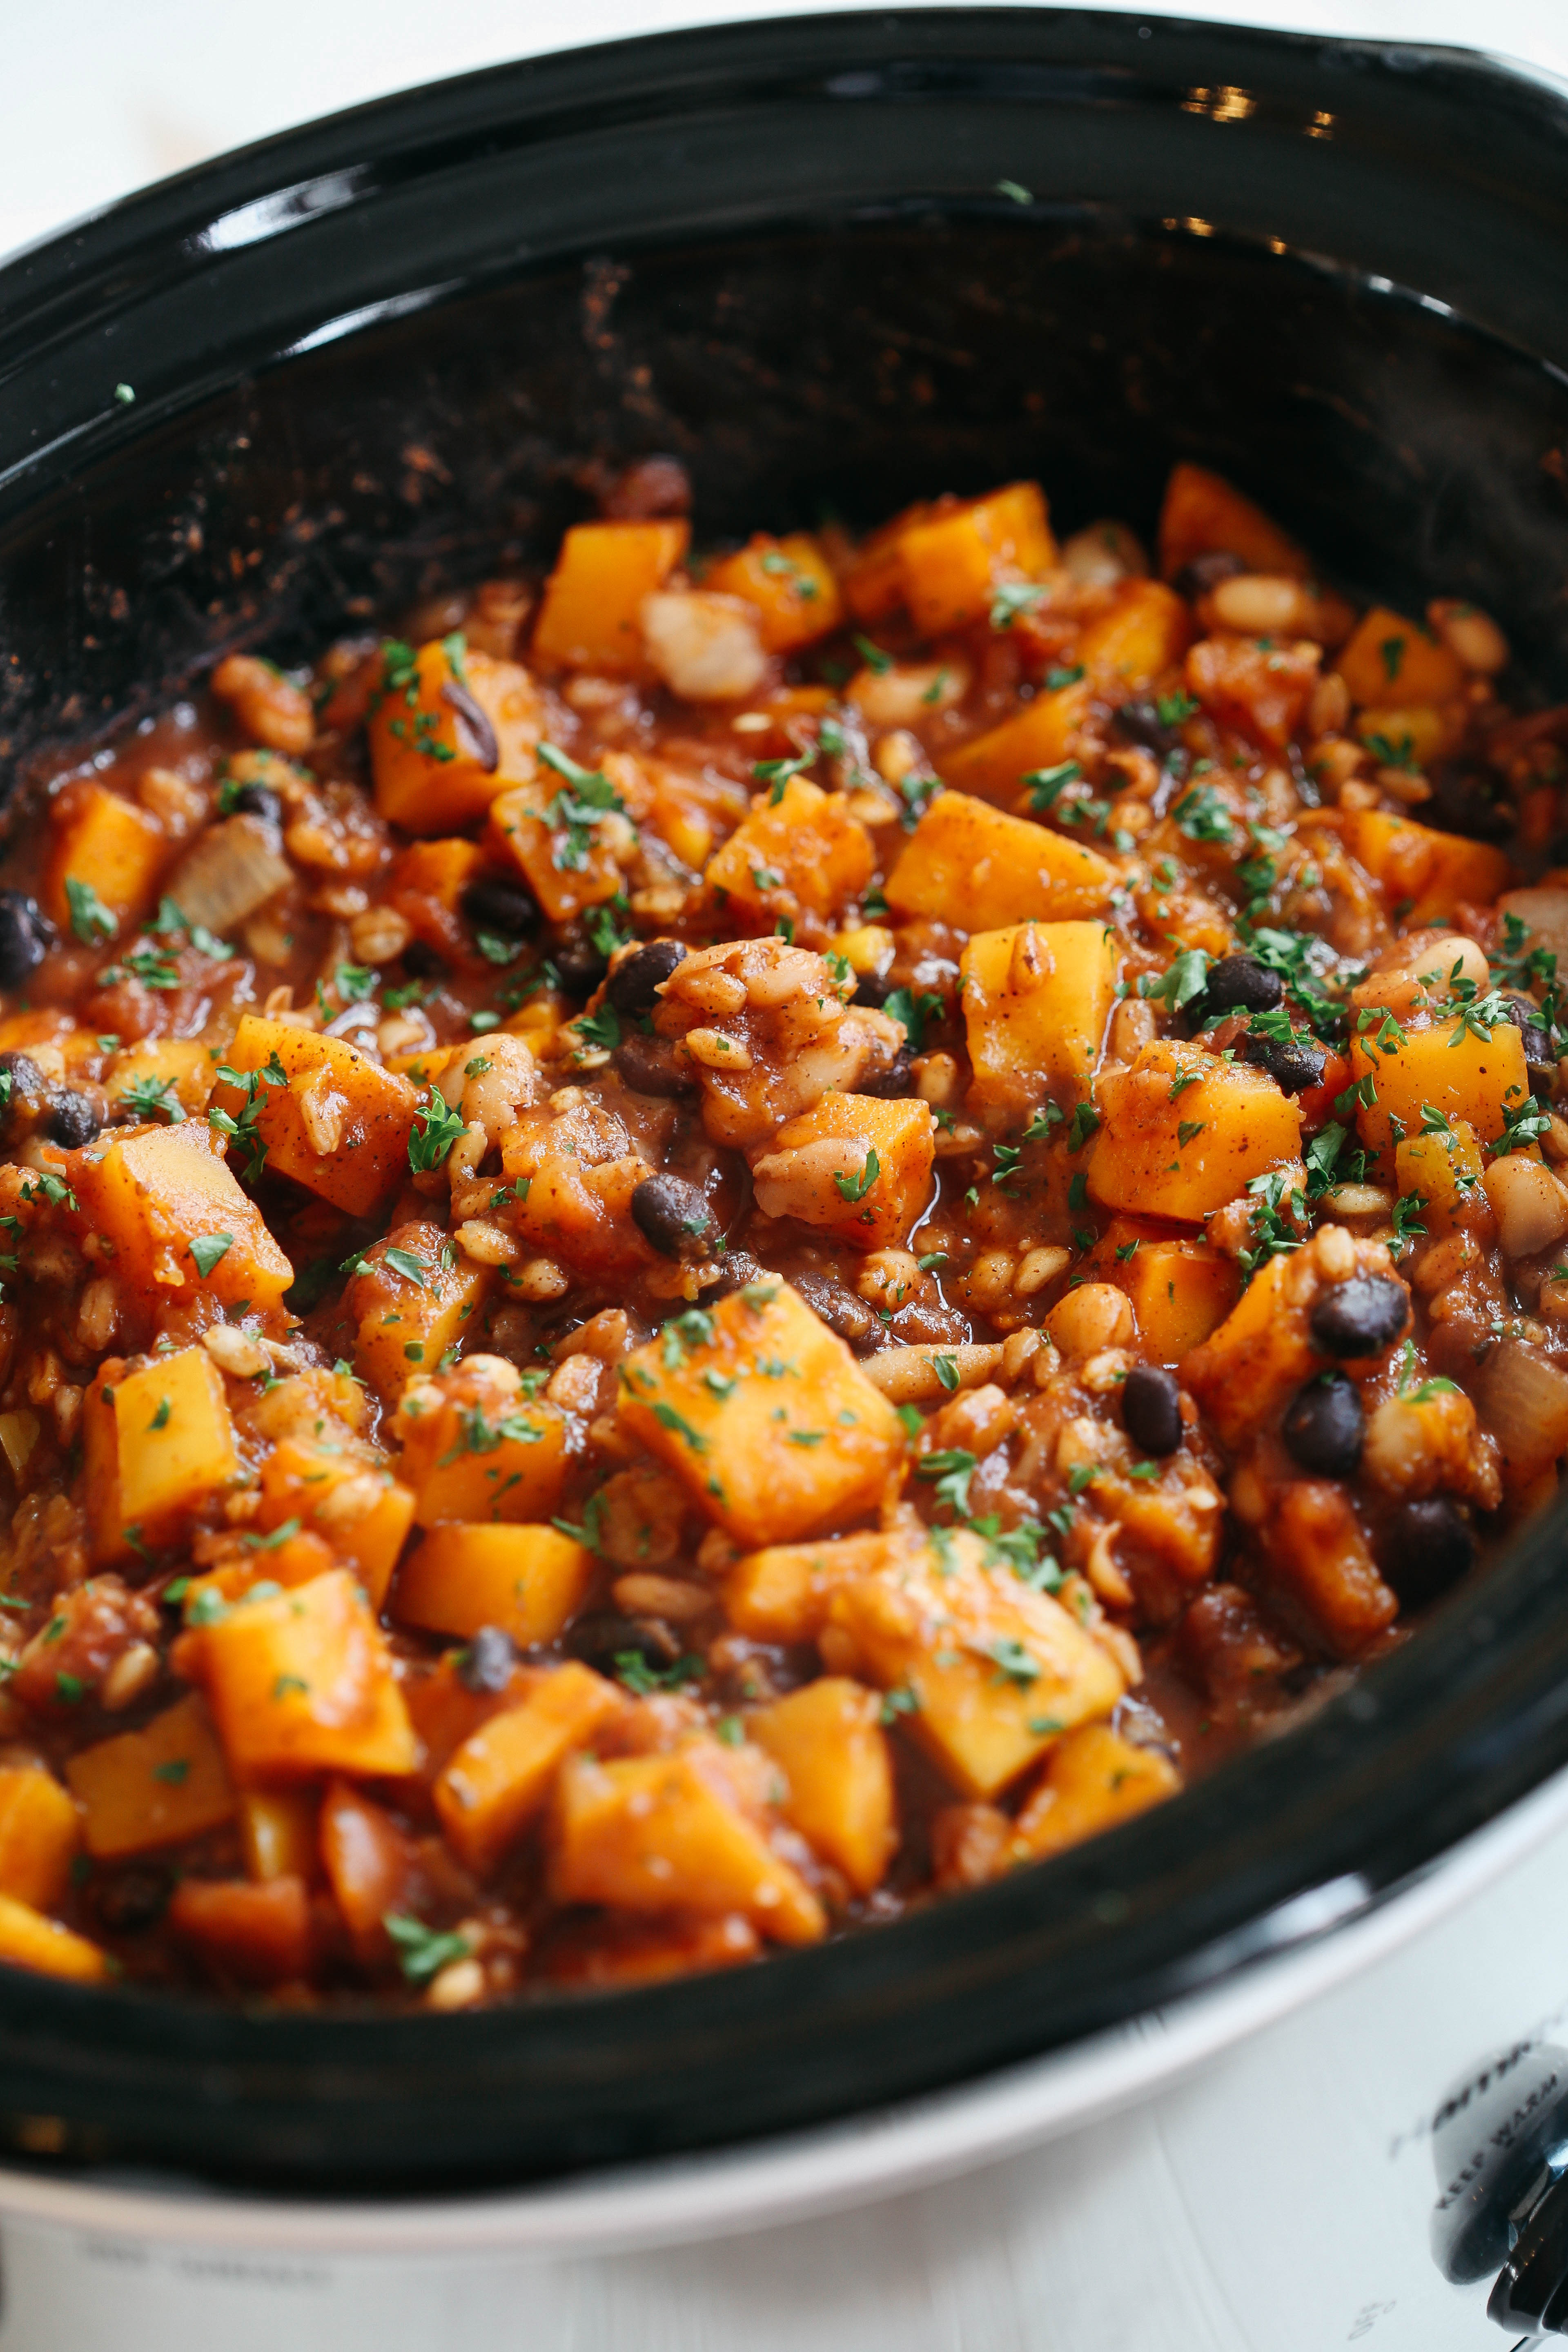 Vegetarian Chili With Squash  Slow Cooker Butternut Squash and Farro Chili Eat